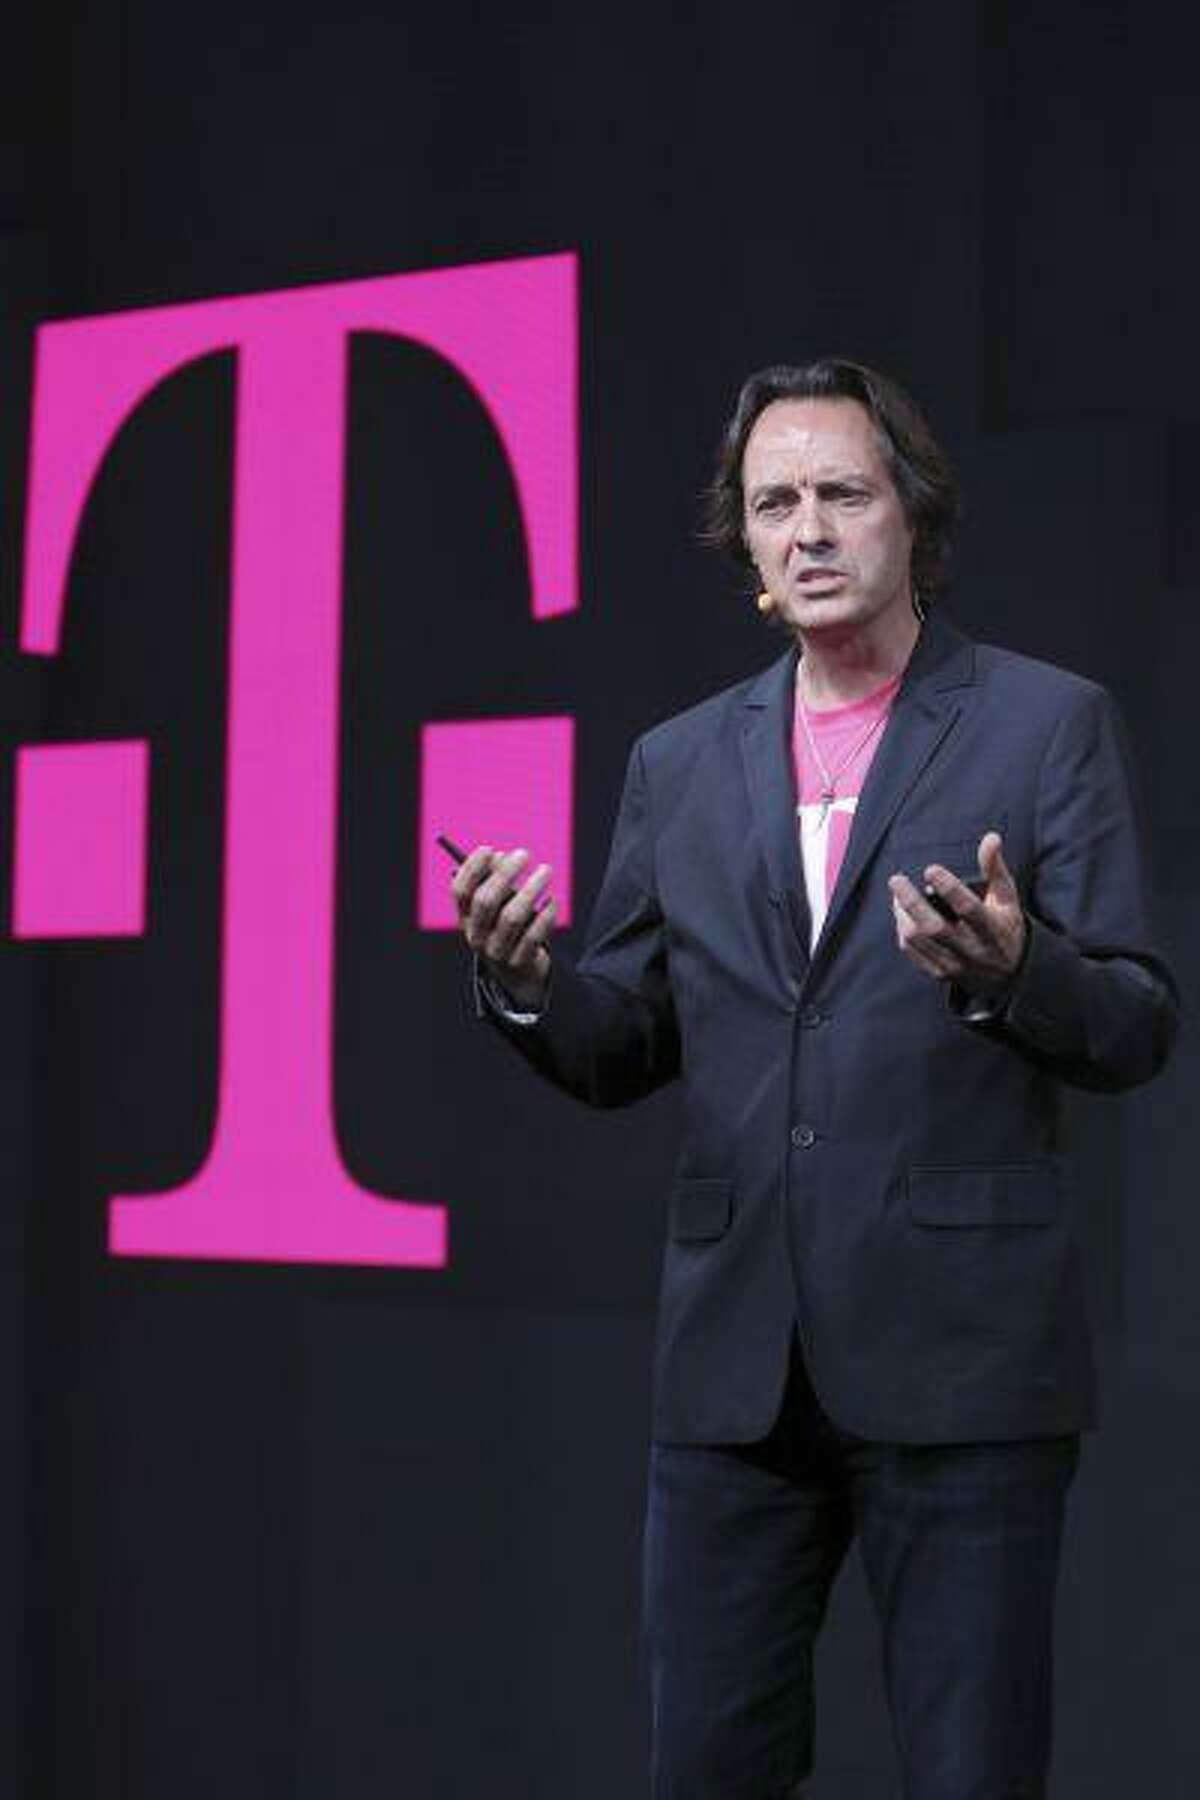 T-Mobile CEO John Legere speaks during news conference, Wednesday, July 10, 2013 in New York. (AP Photo/Mary Altaffer)